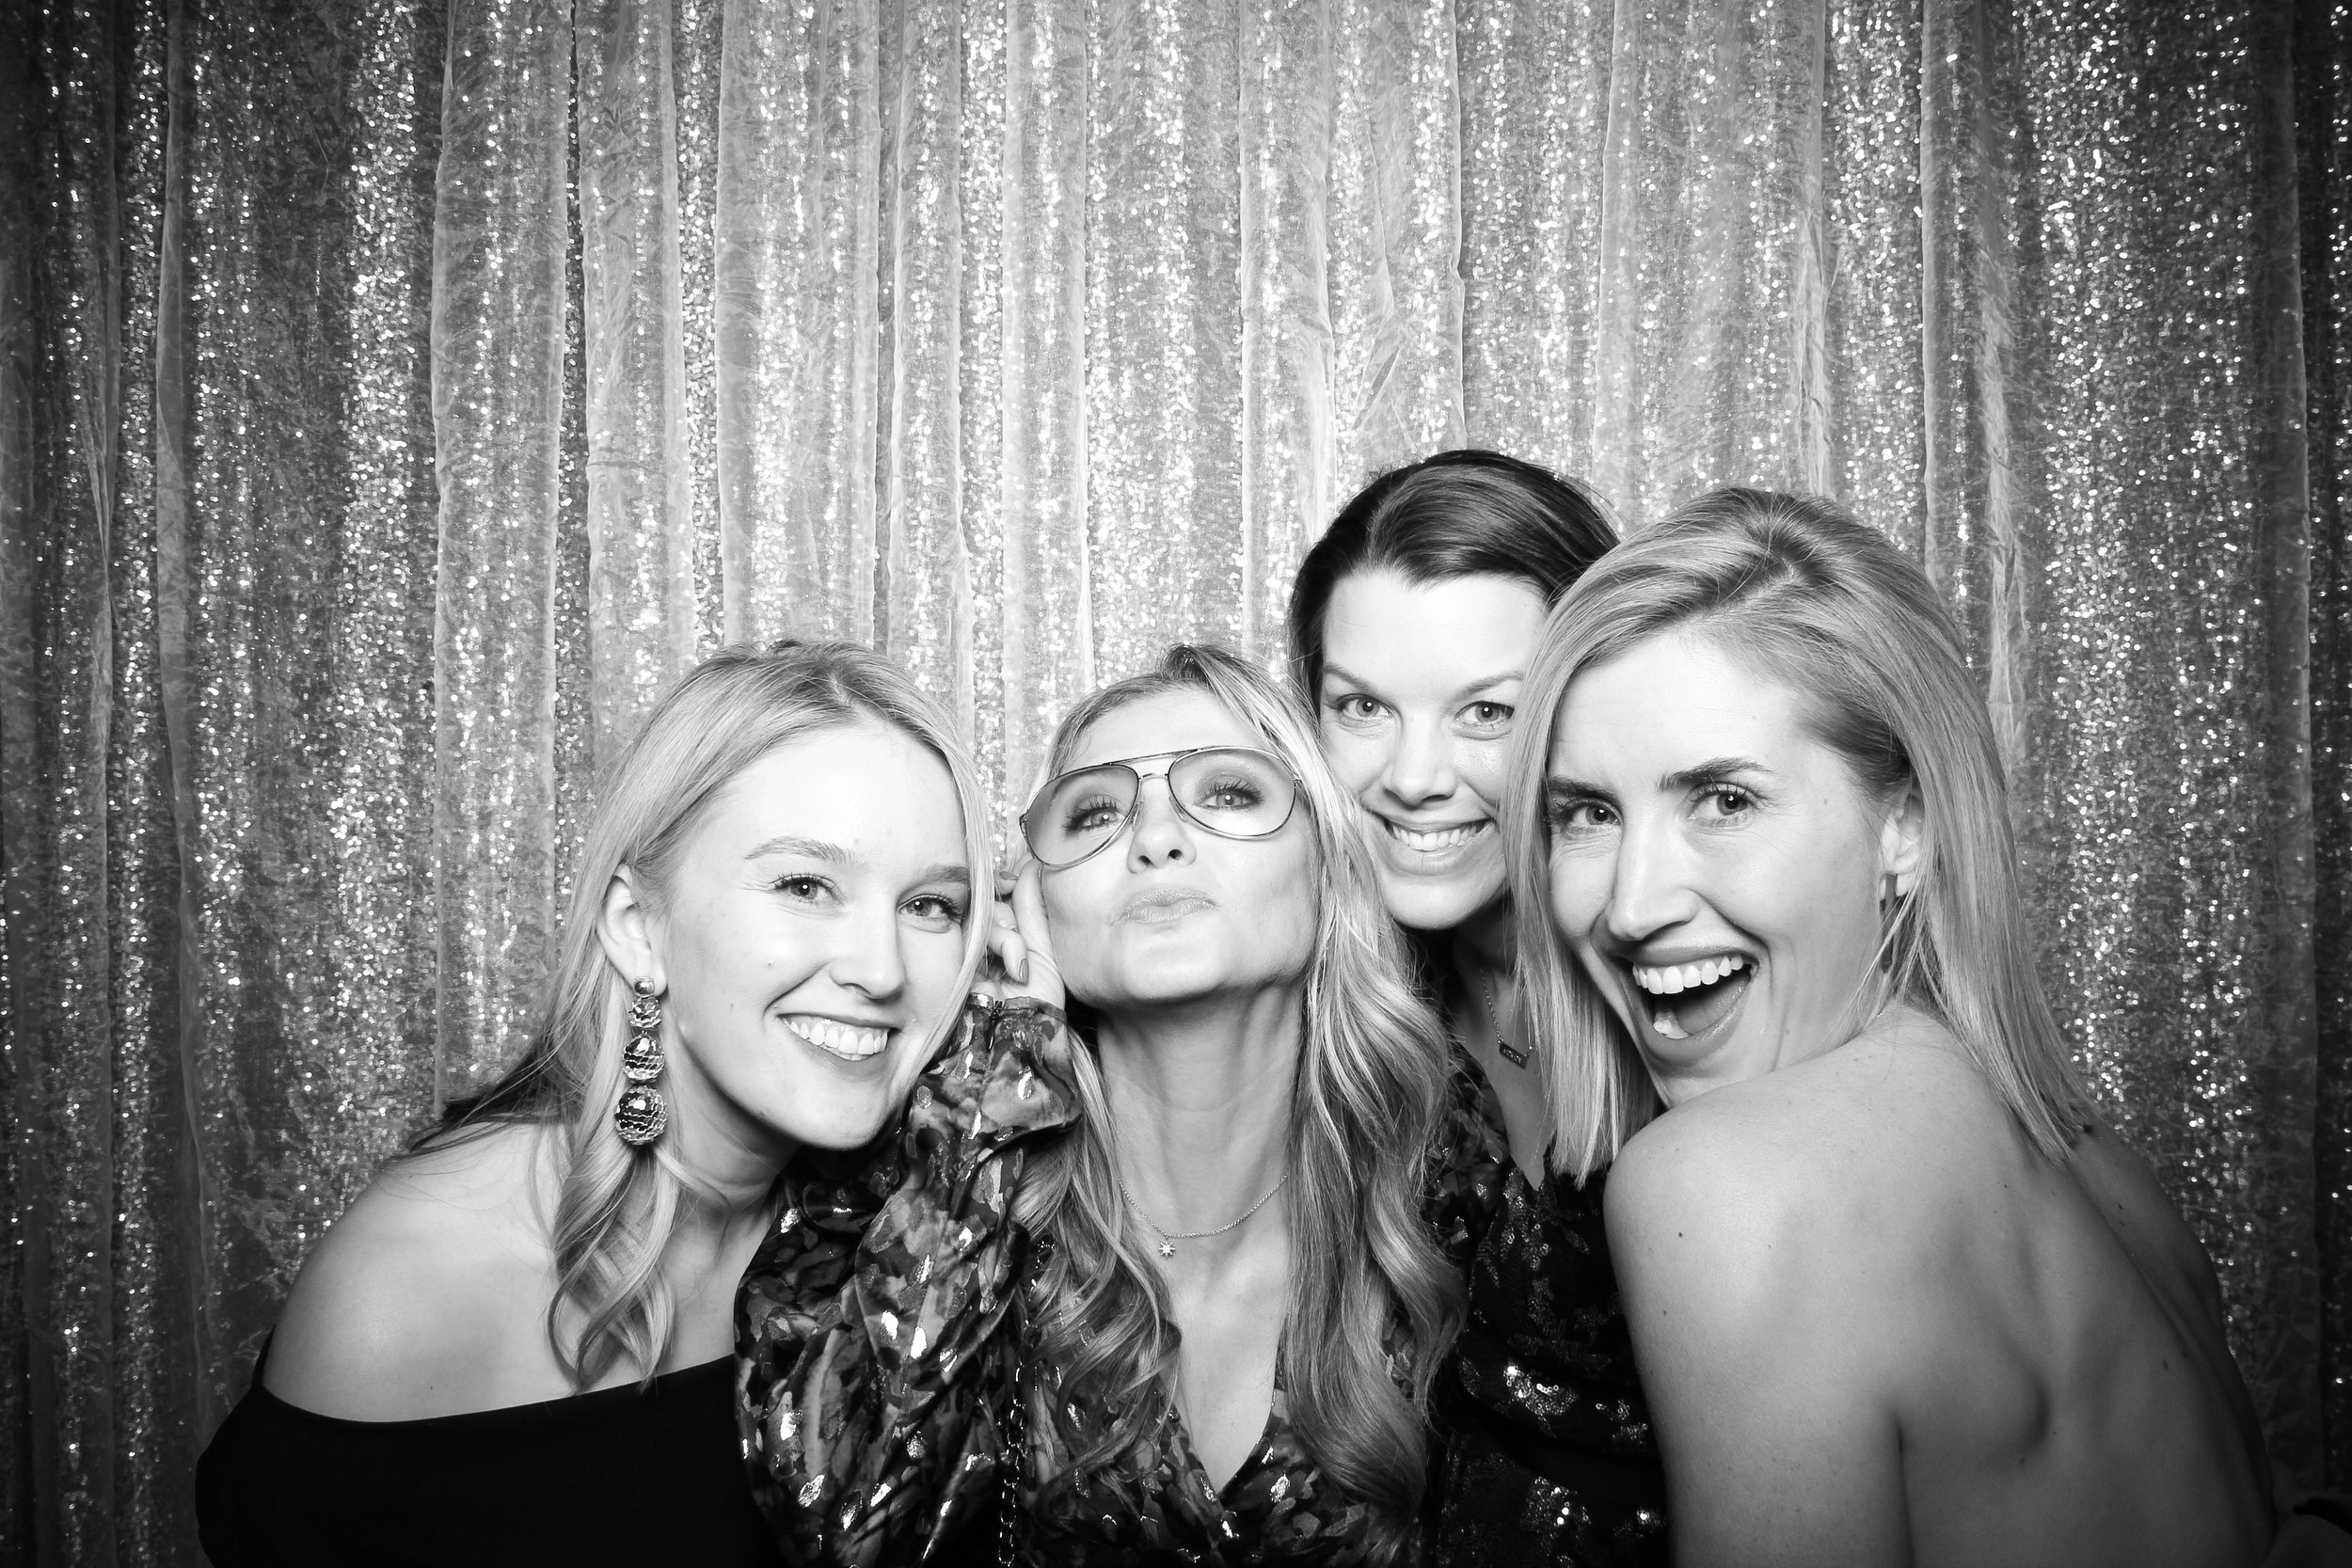 Chicago_Vintage_Photobooth_Montgomery_Club_Holiday_Party_18.jpg